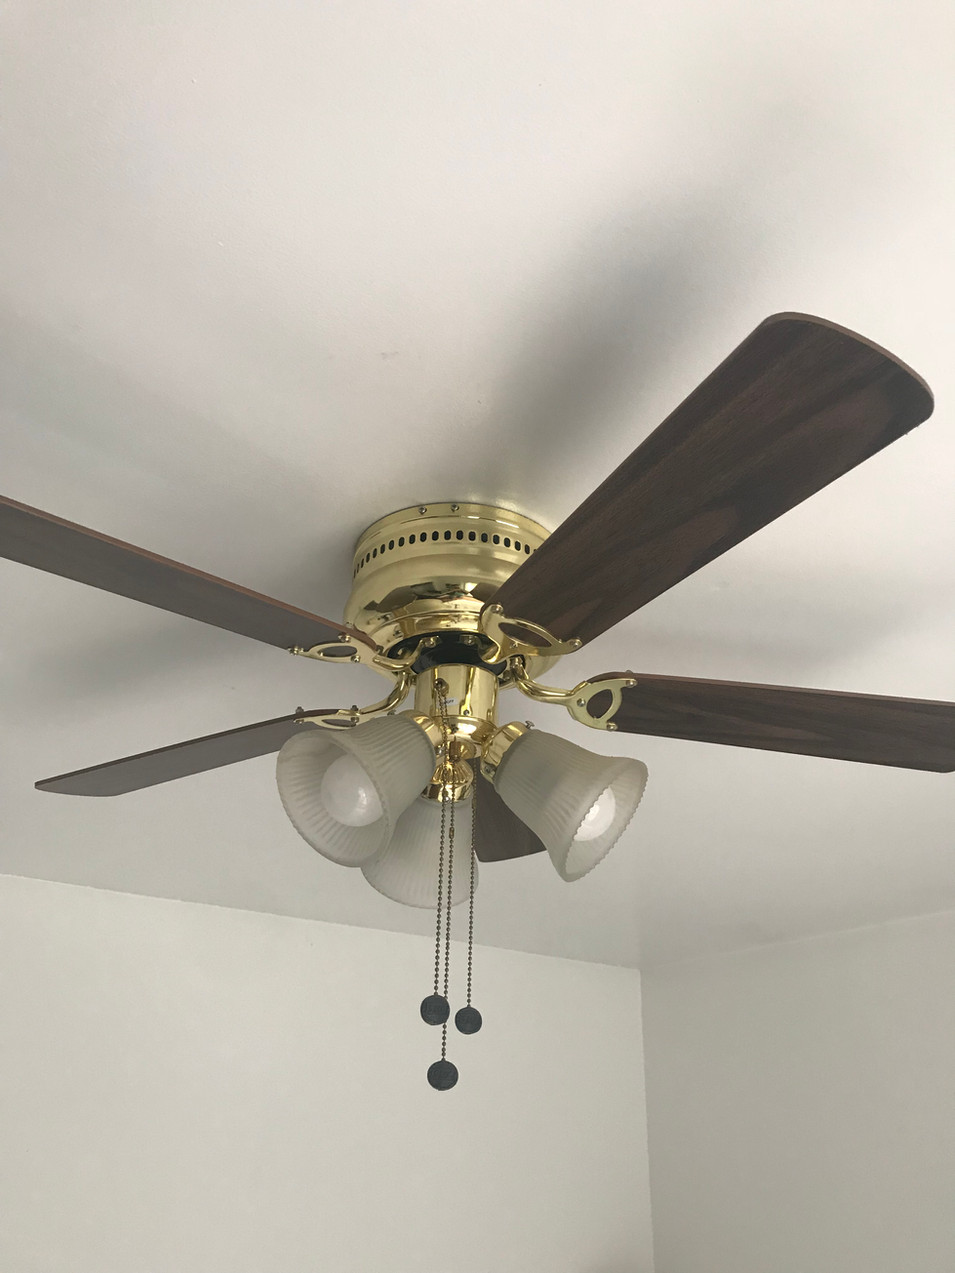 Old 1980's ceiling fan.